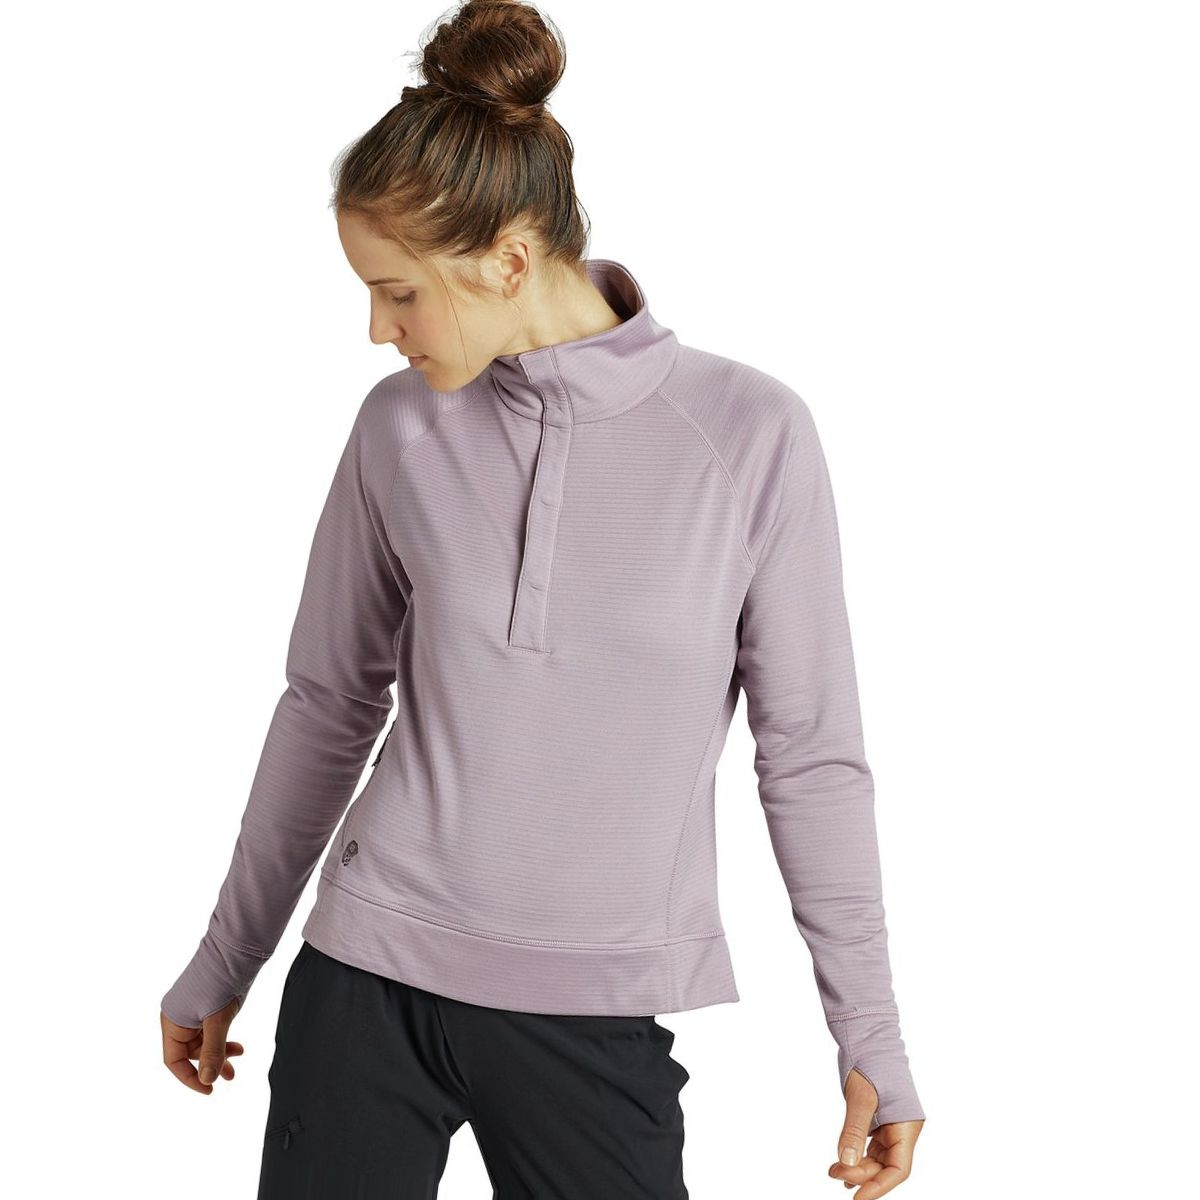 Mountain Hardwear Norse Peak Pullover Fleece - Women's